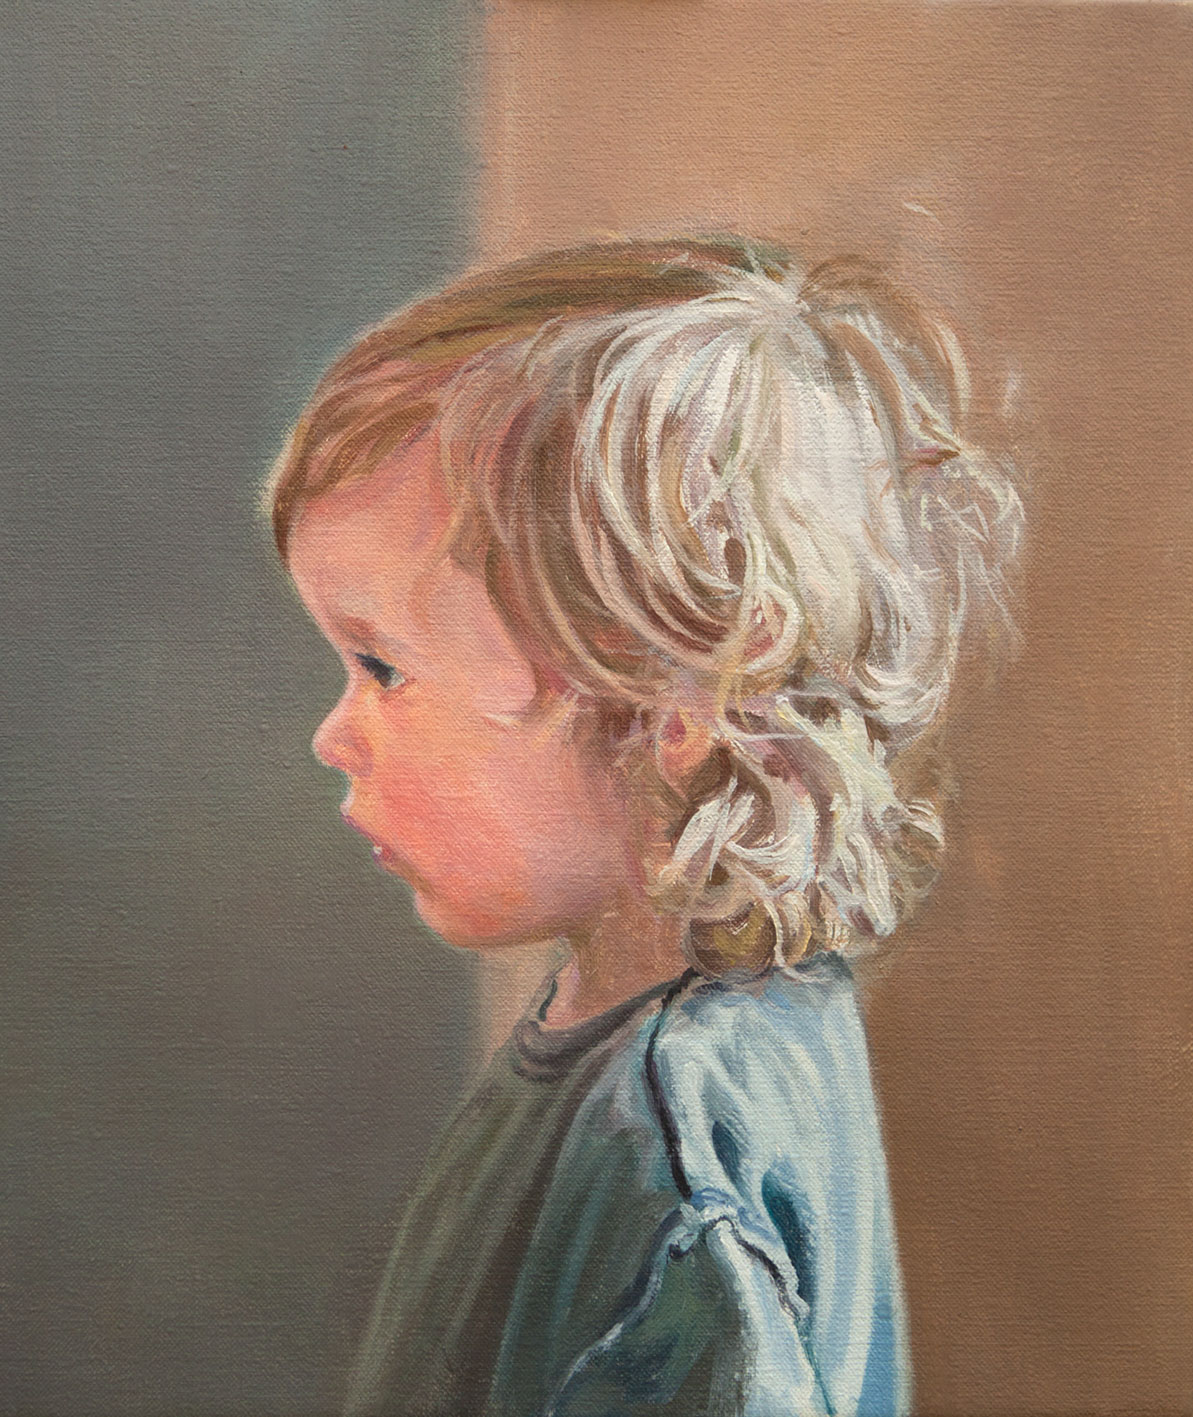 a Craig Wylie, _Portrait sketch of the artist_s son, Orson_, 36x31cm, Oil on canvas, 2016